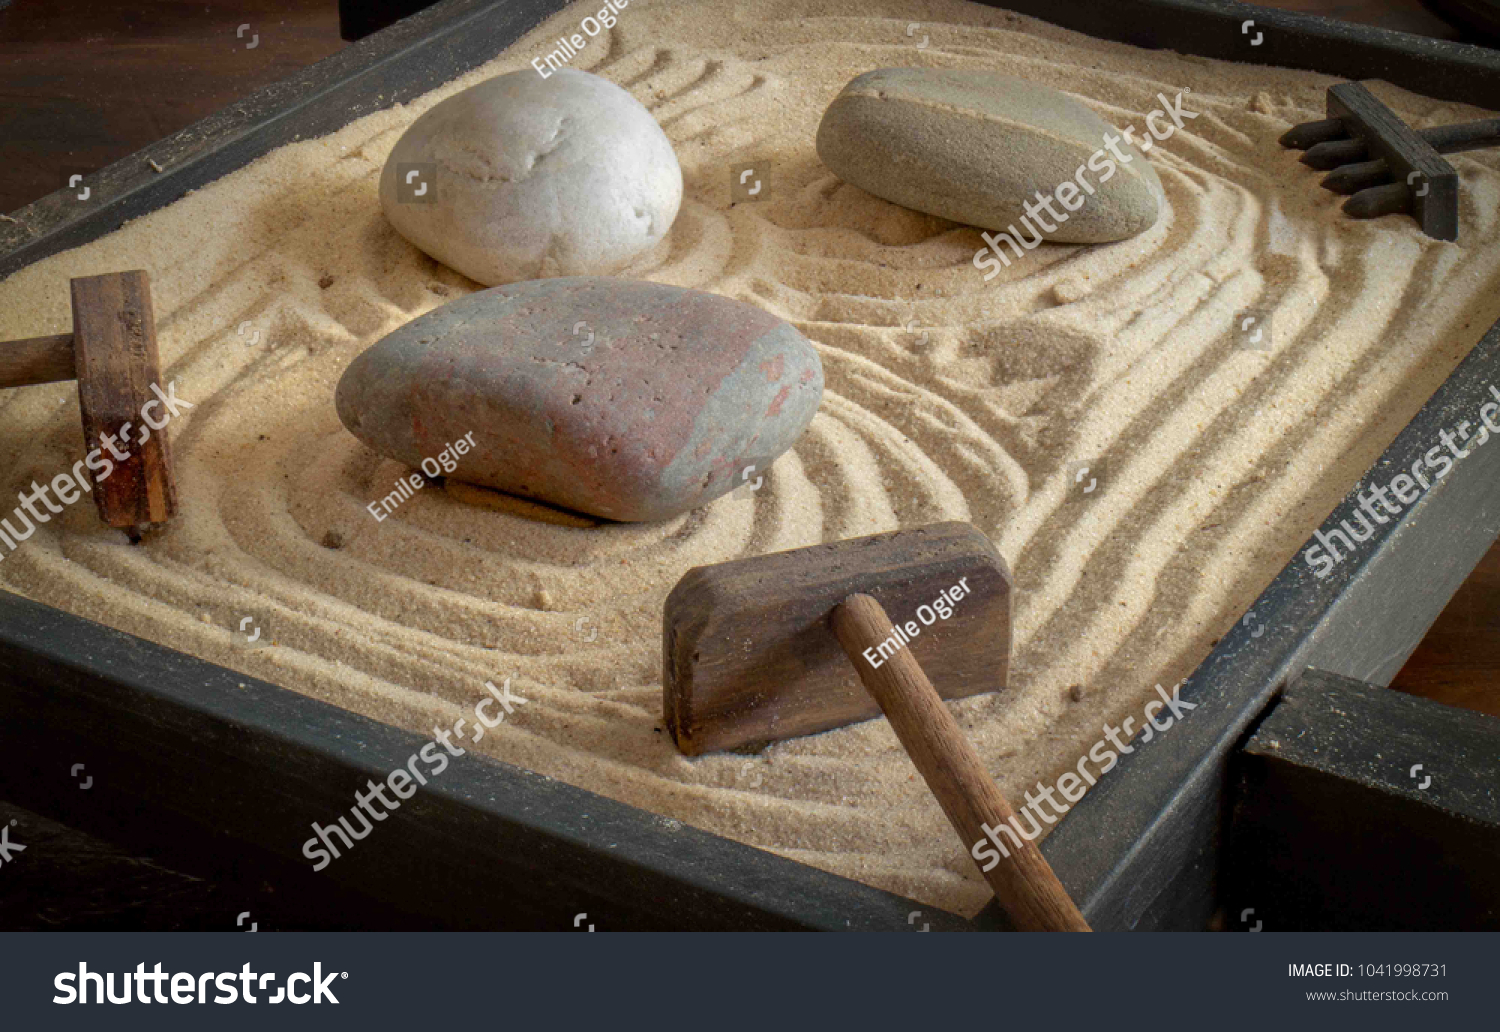 Table Top Zen Garden Tabletop Zen Garden Stock Photo Edit Now 1041998731 Shutterstock